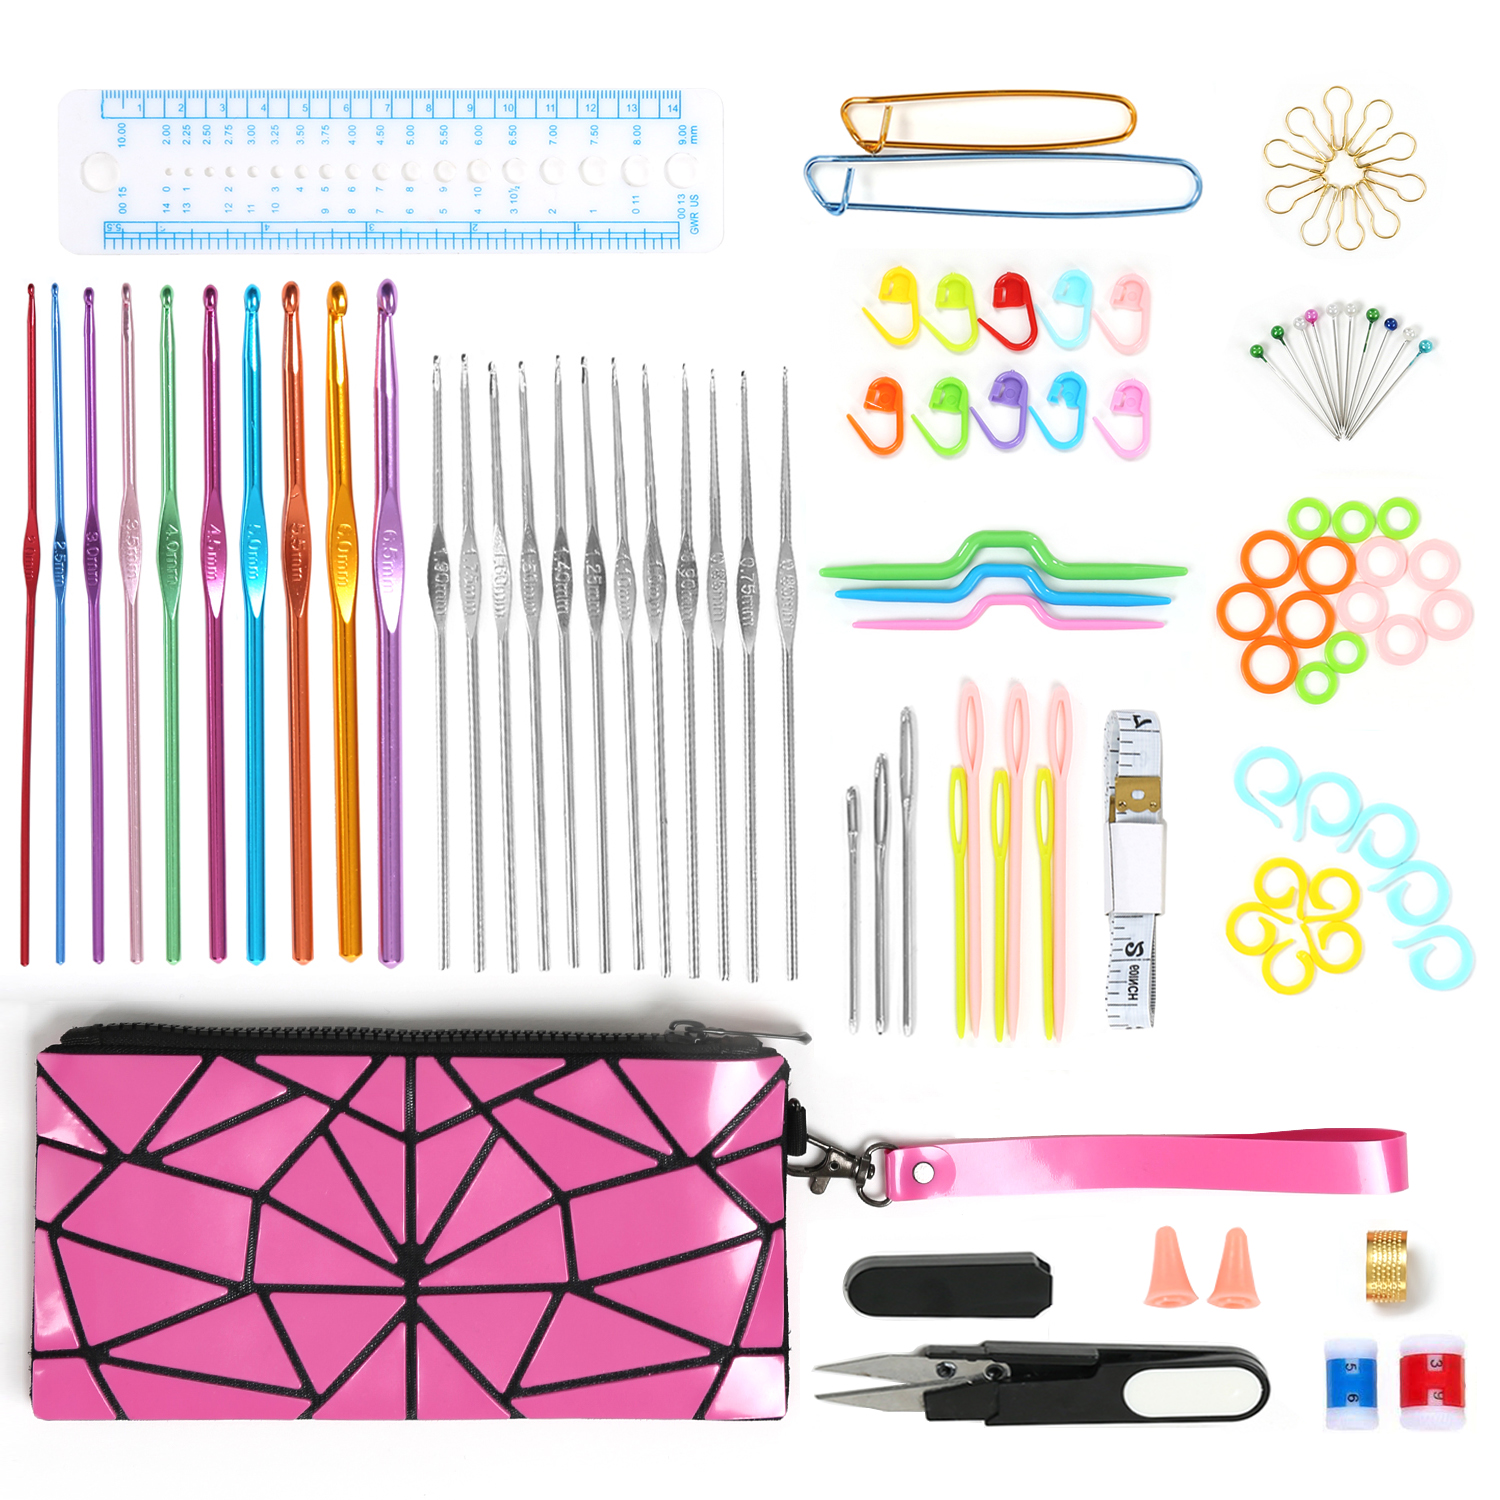 100pcs Crochet Hooks Set Aluminum Needles With Tools Accessories for Knitting